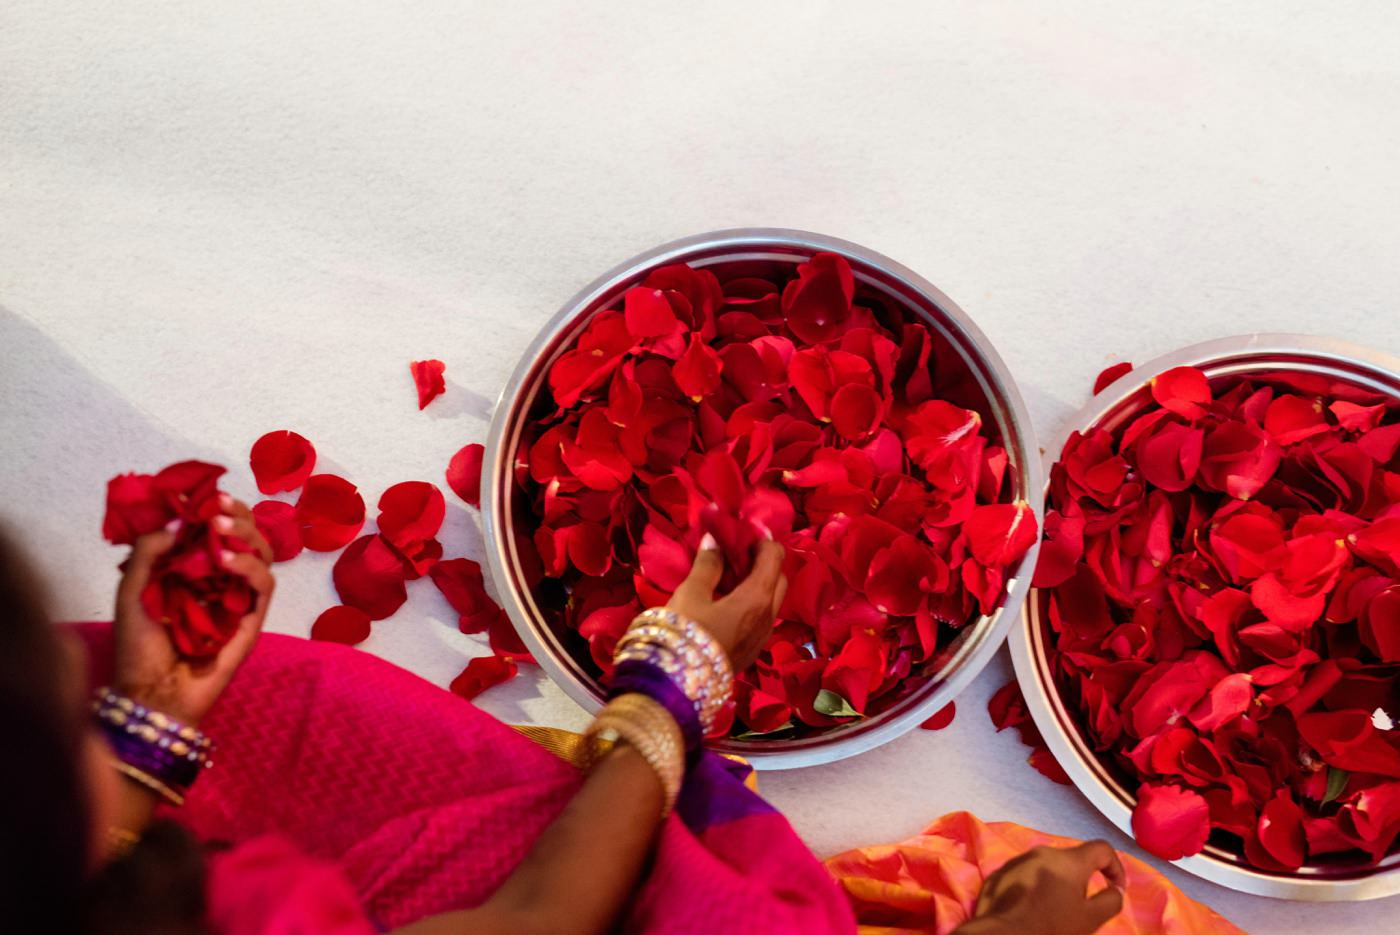 Vibrant red petals at Hindu wedding Painshill Park Conservatory Surrey